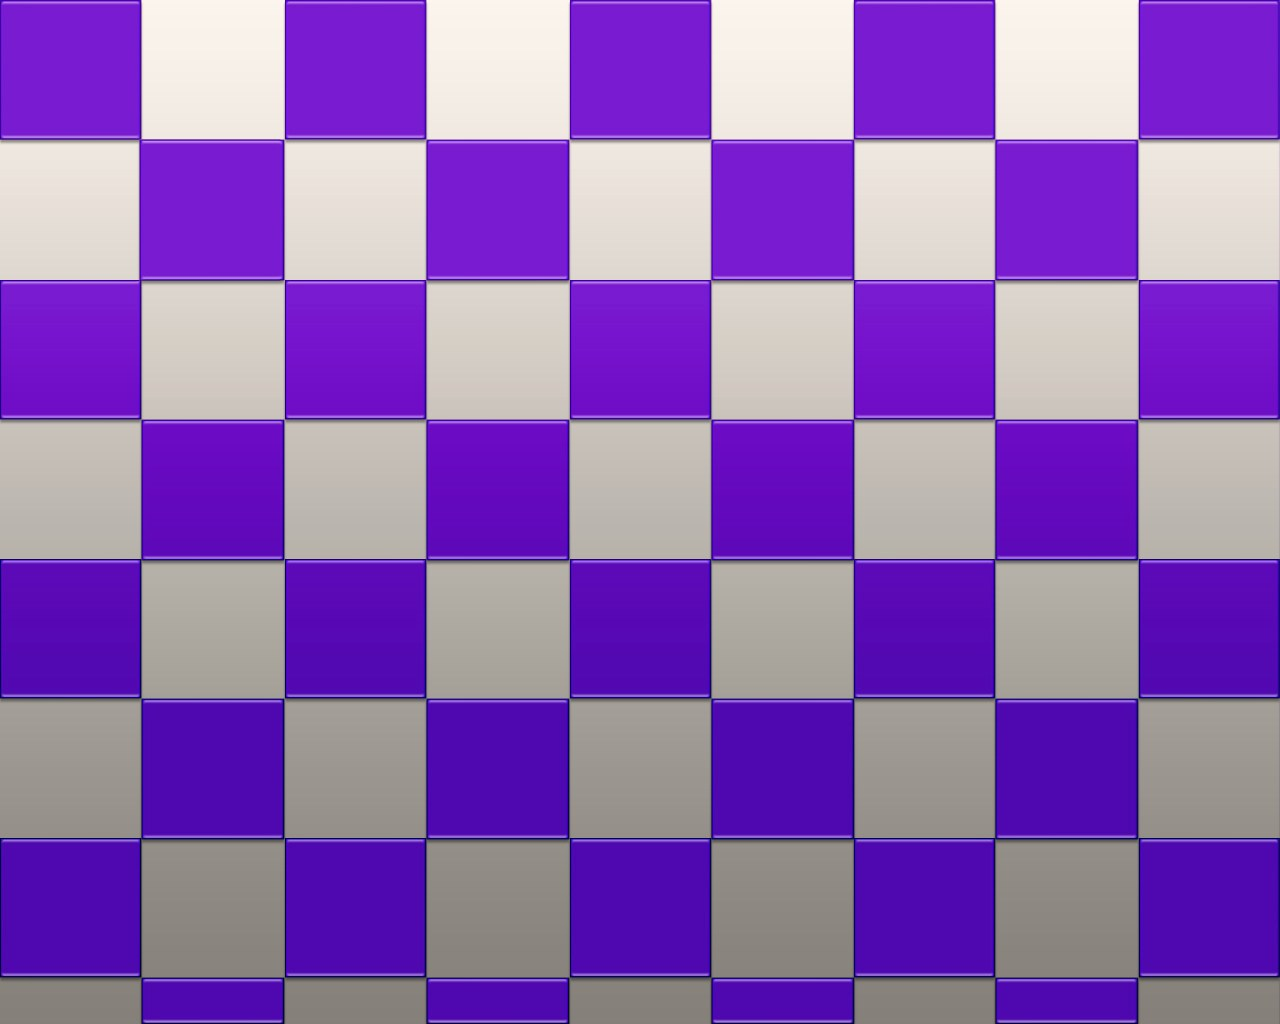 Purple Checkered, Abstract, Checkerboard, Checkered, Chess, Pattern Wallpaper